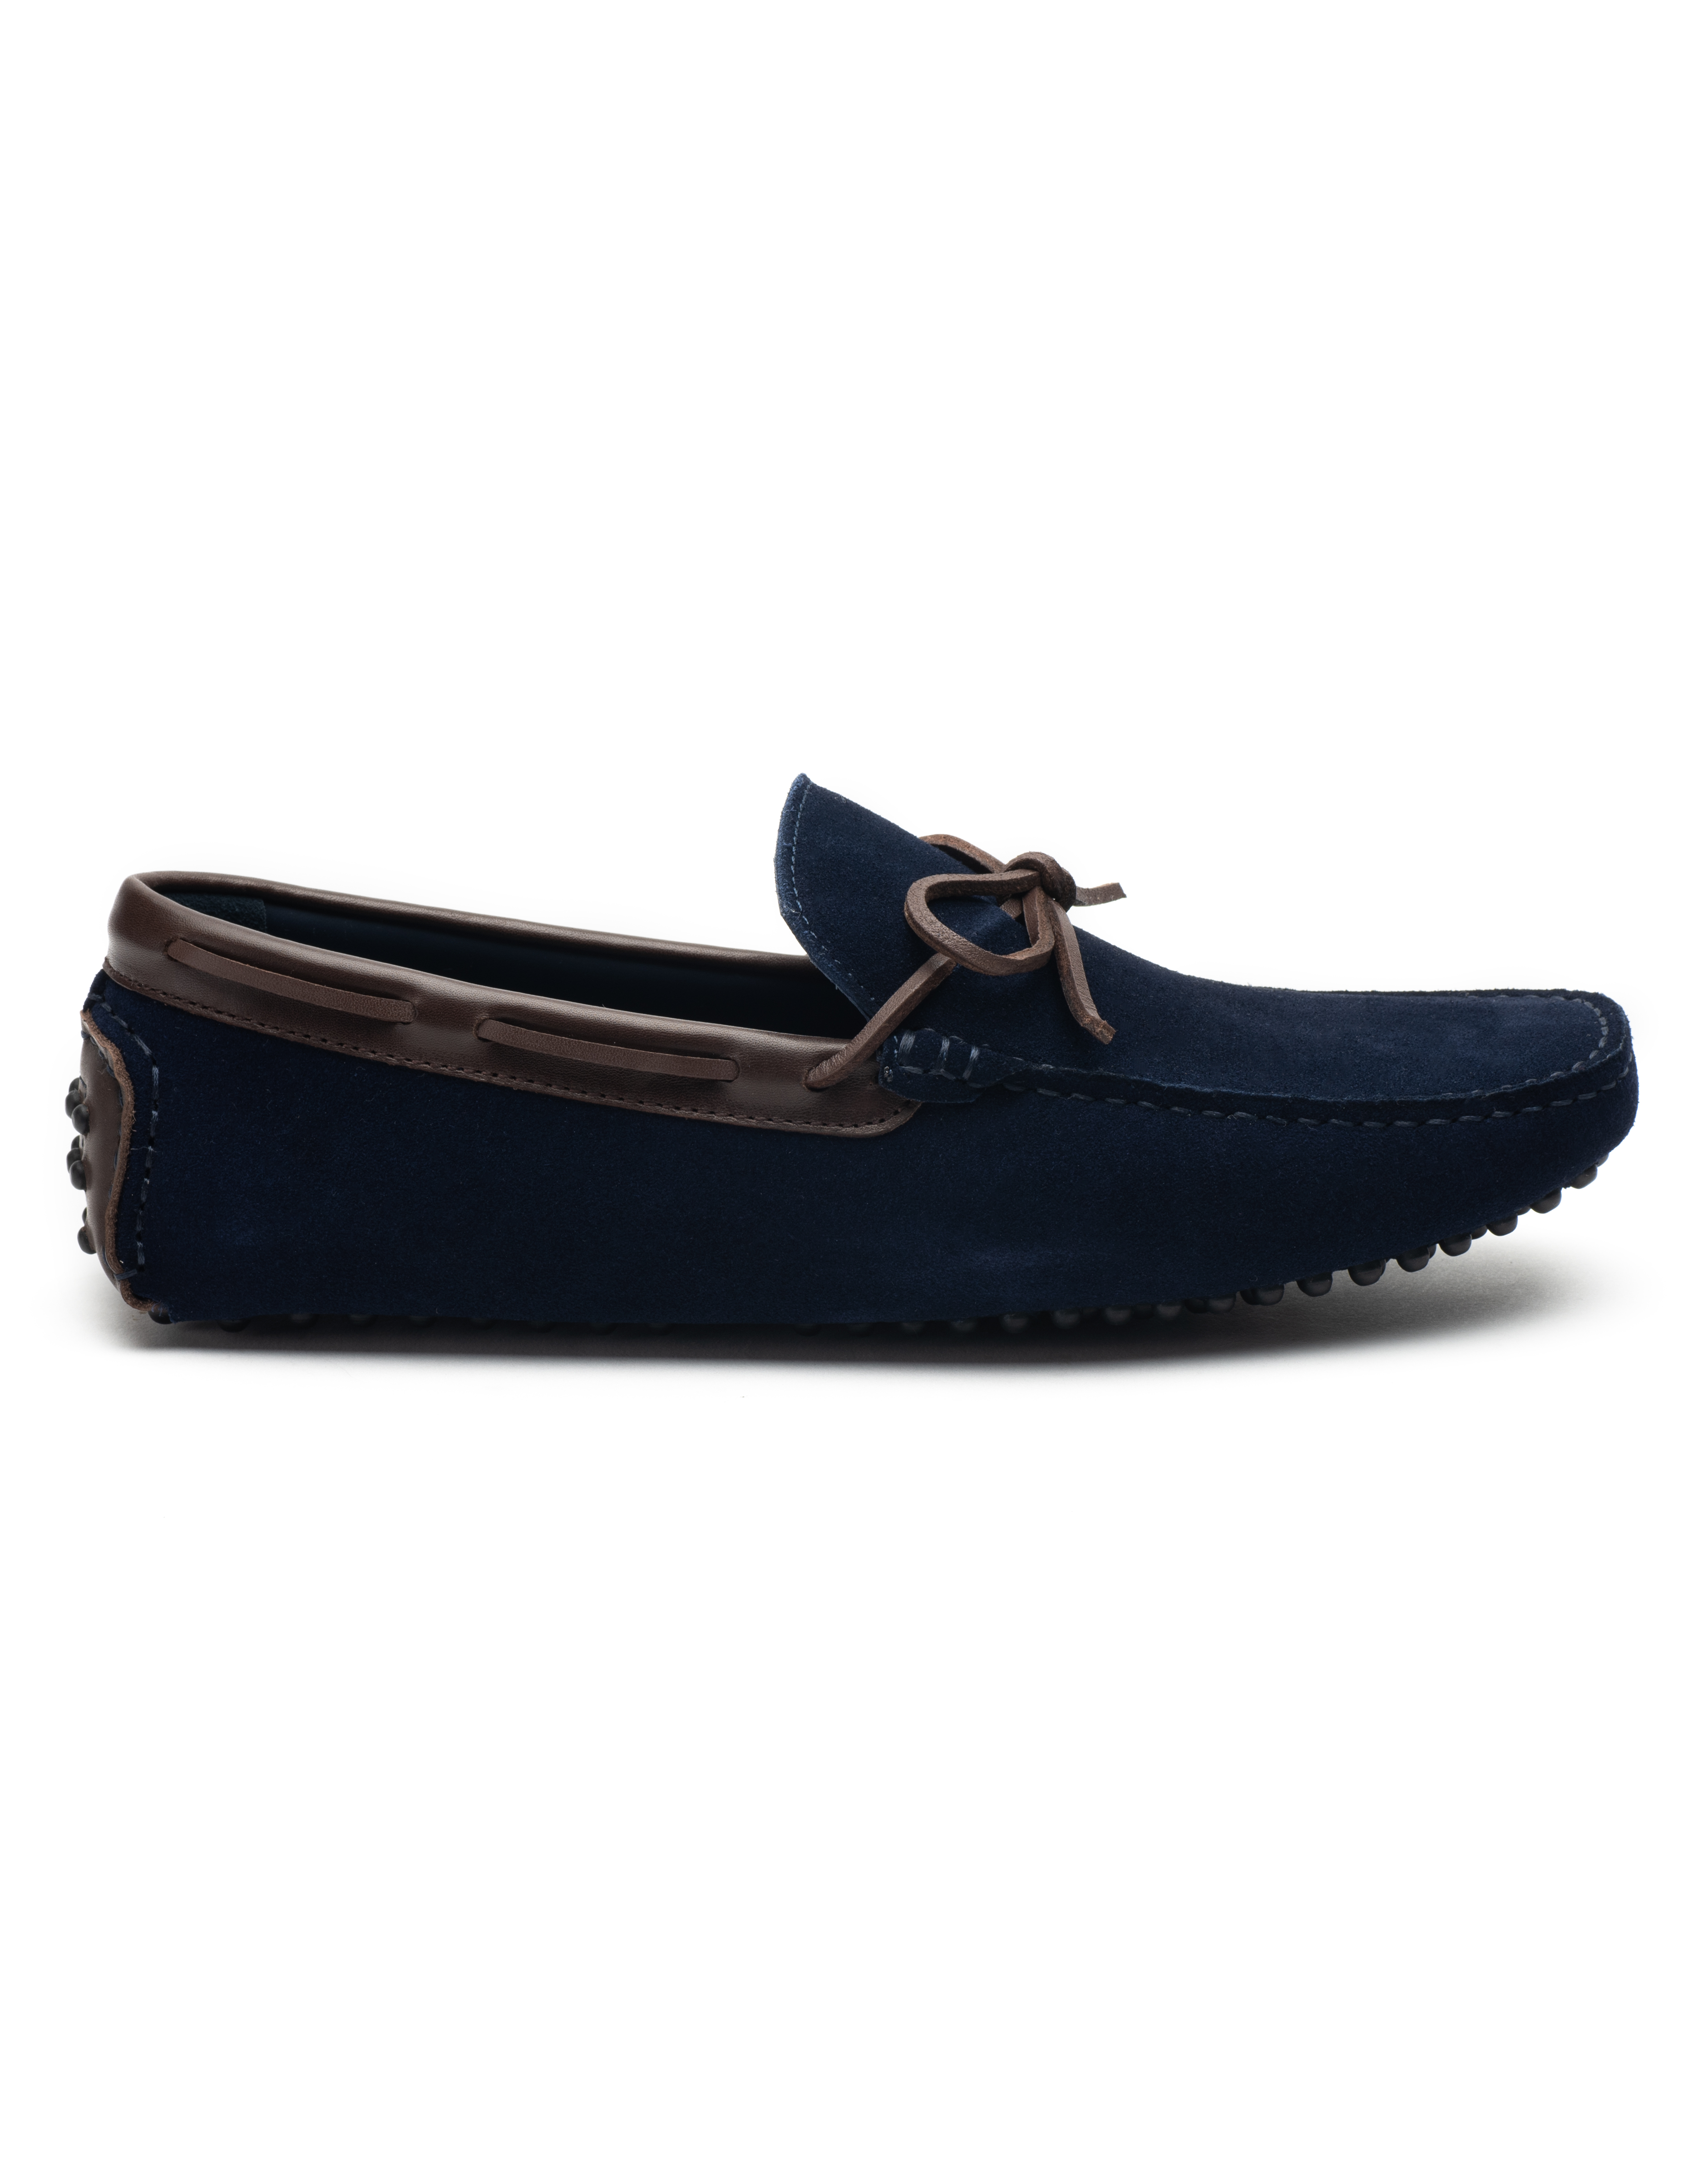 Heel _ Buckle London -Shoes-HF101-1-Drivers-Dark Blue suede with tan tassel-1